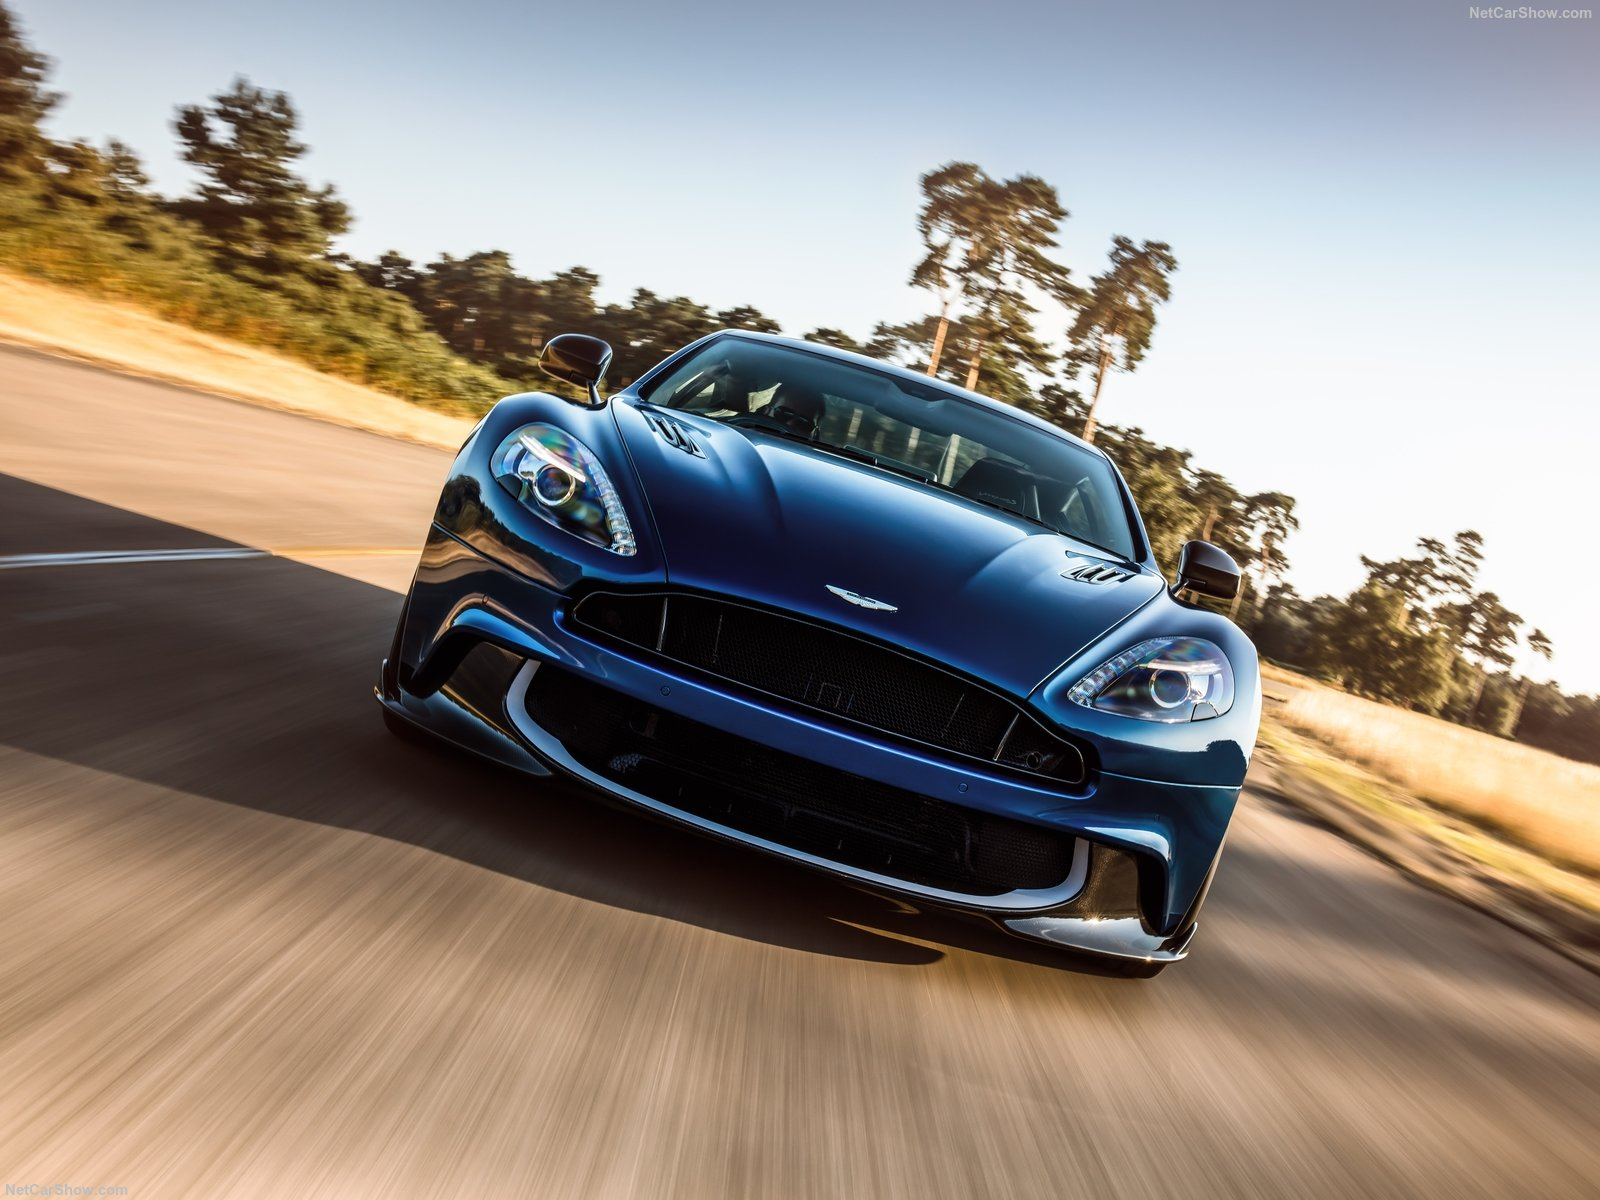 Aston Martin Vanquish S Steps Up The Game